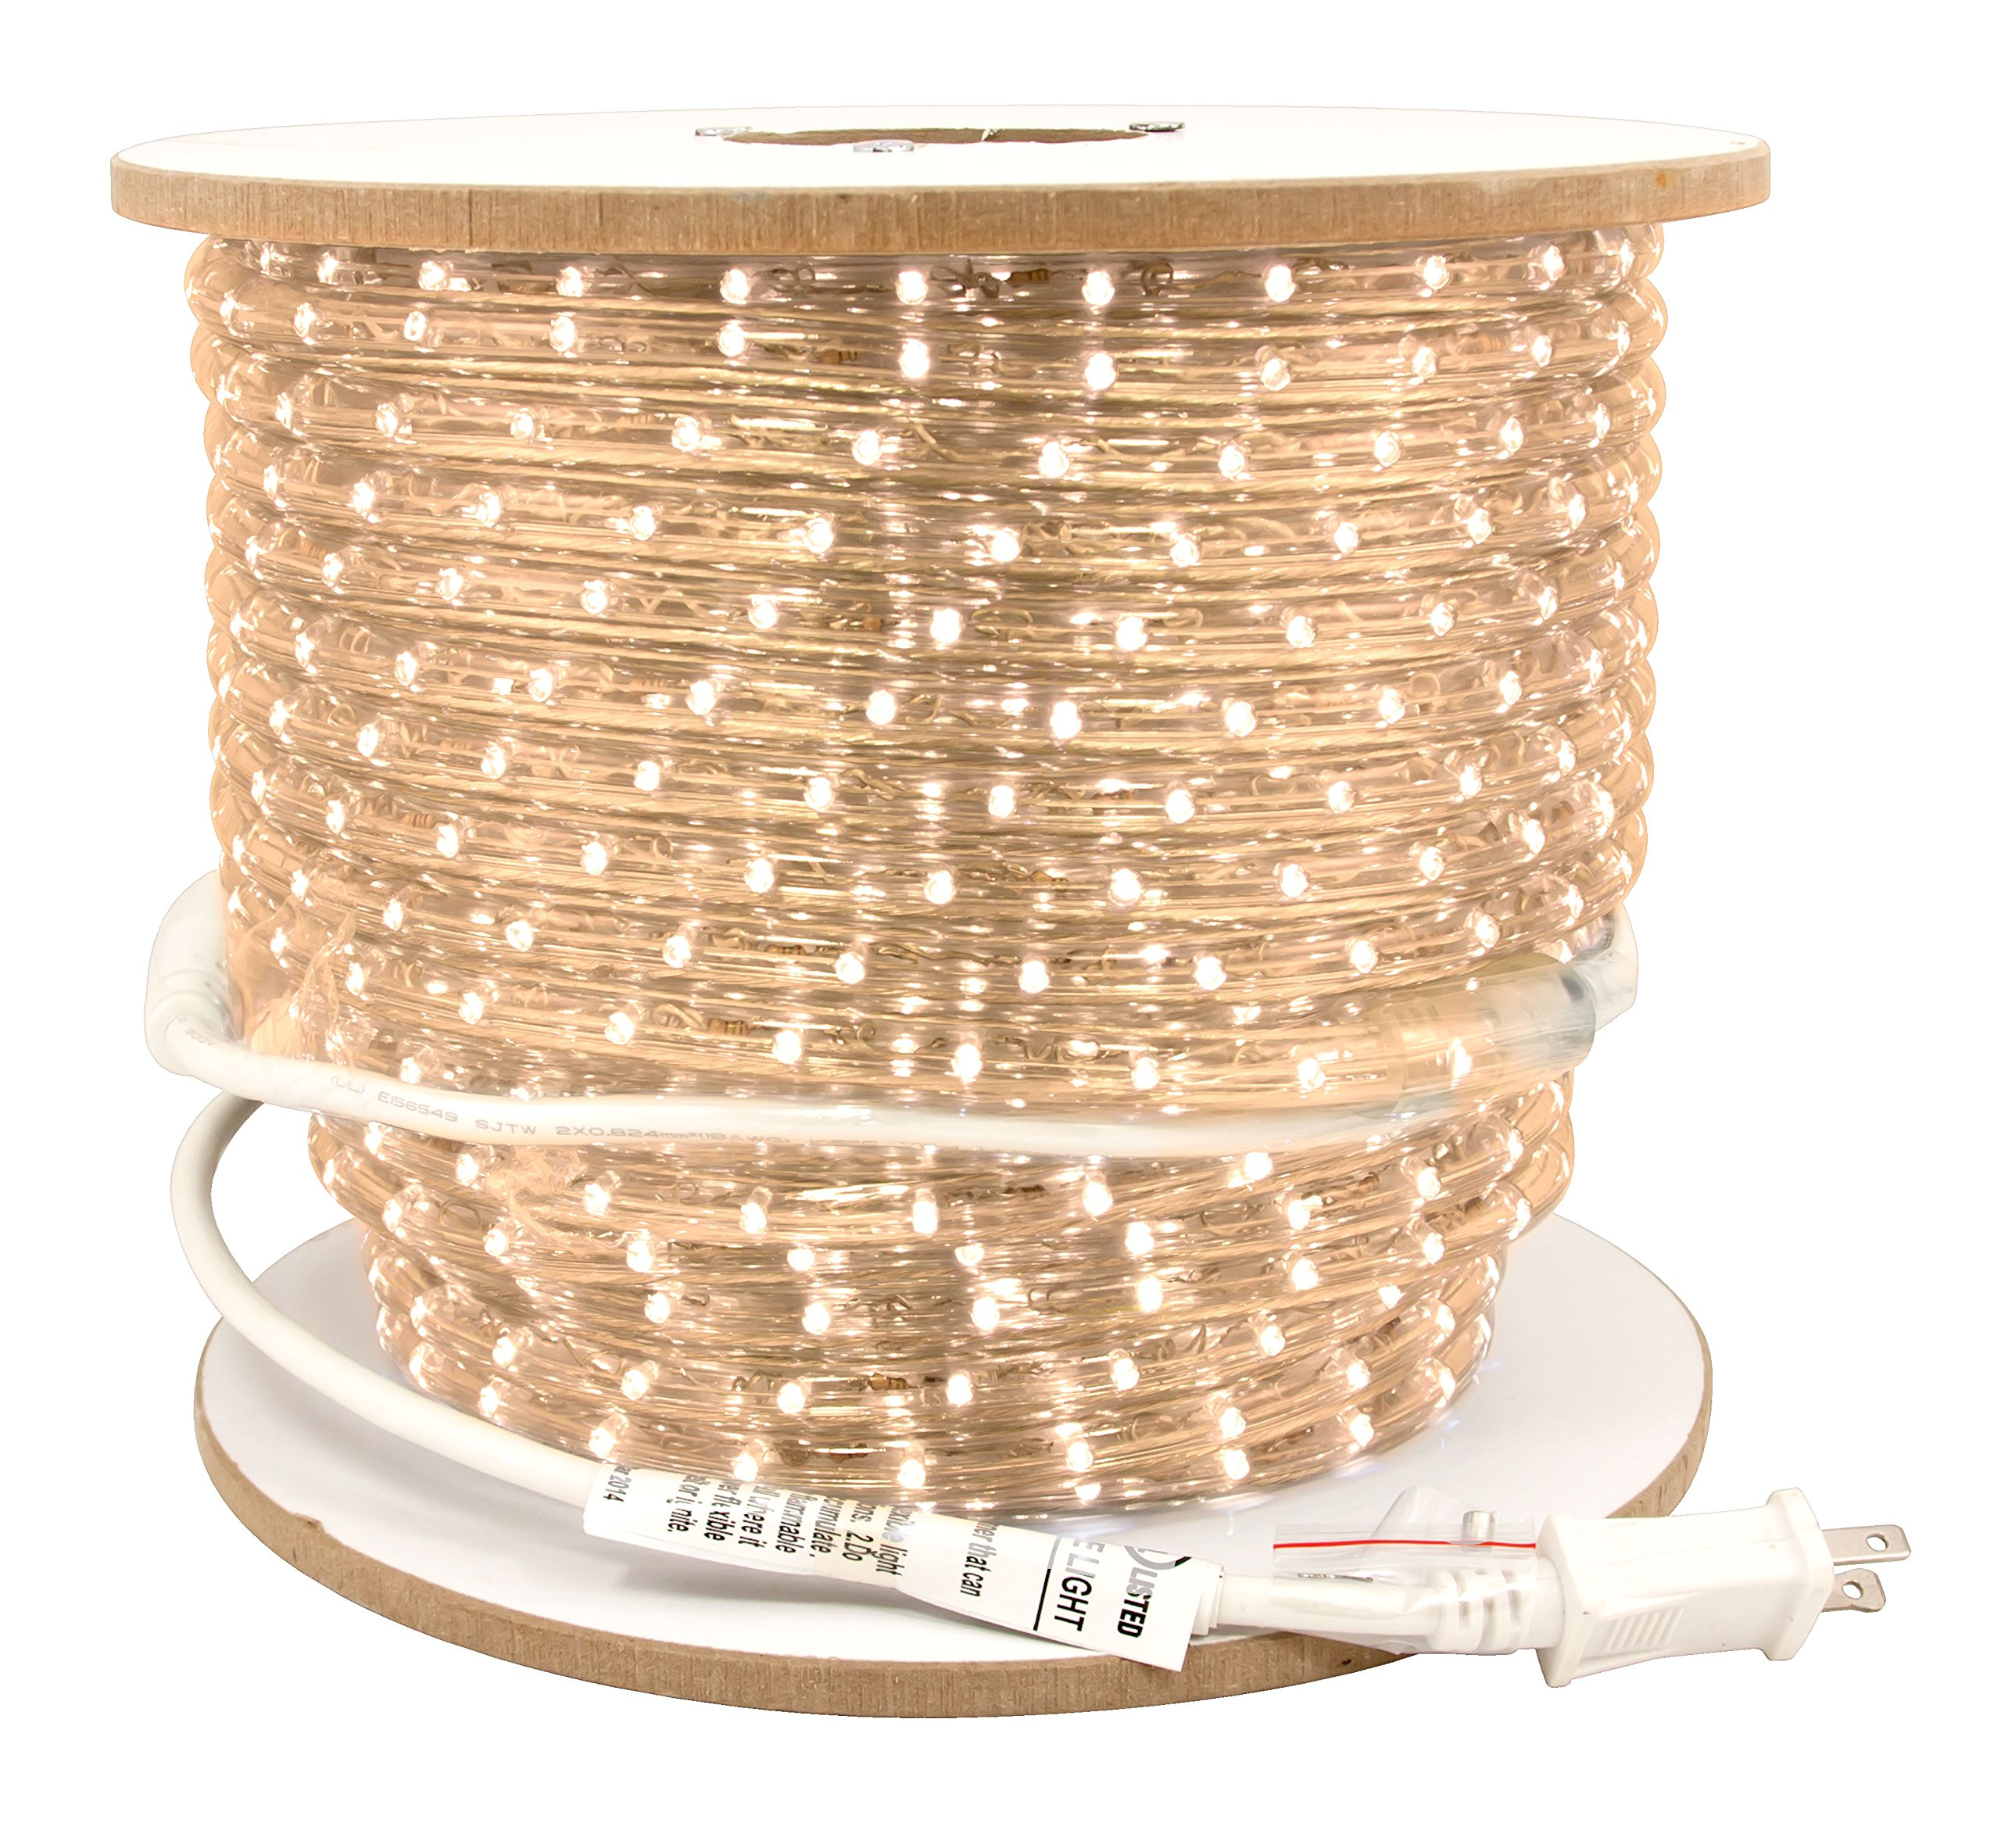 American Lighting LED Flexbrite 3/8-Inch Rope Light Reel, 150-Feet, 3000K Warm White